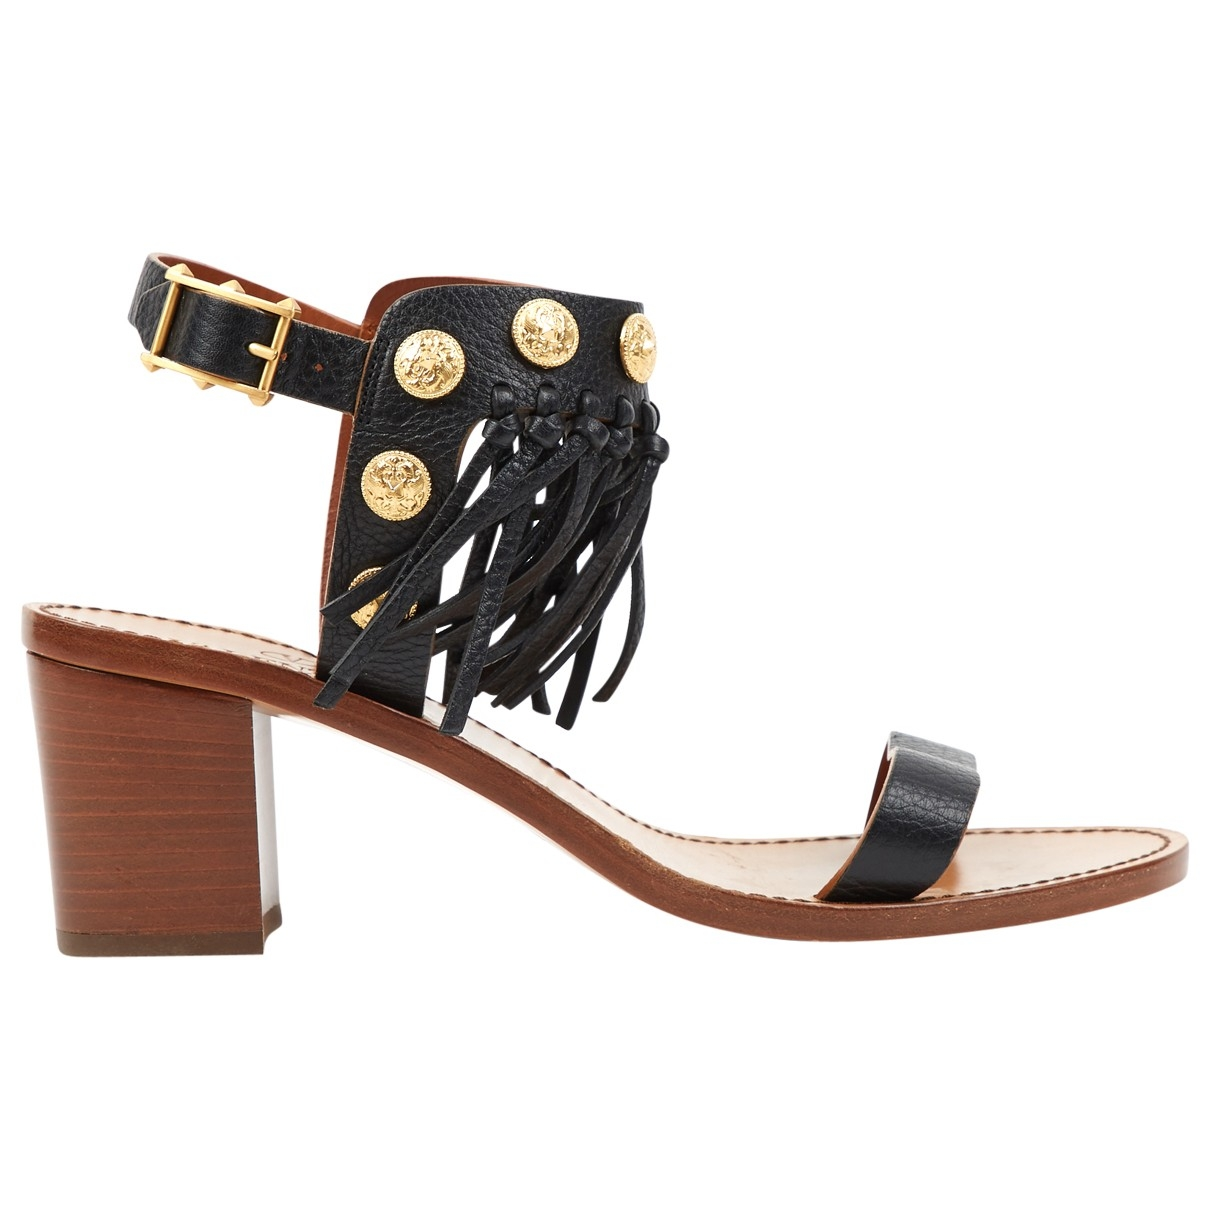 Valentino Garavani \N Black Leather Sandals for Women 39 EU